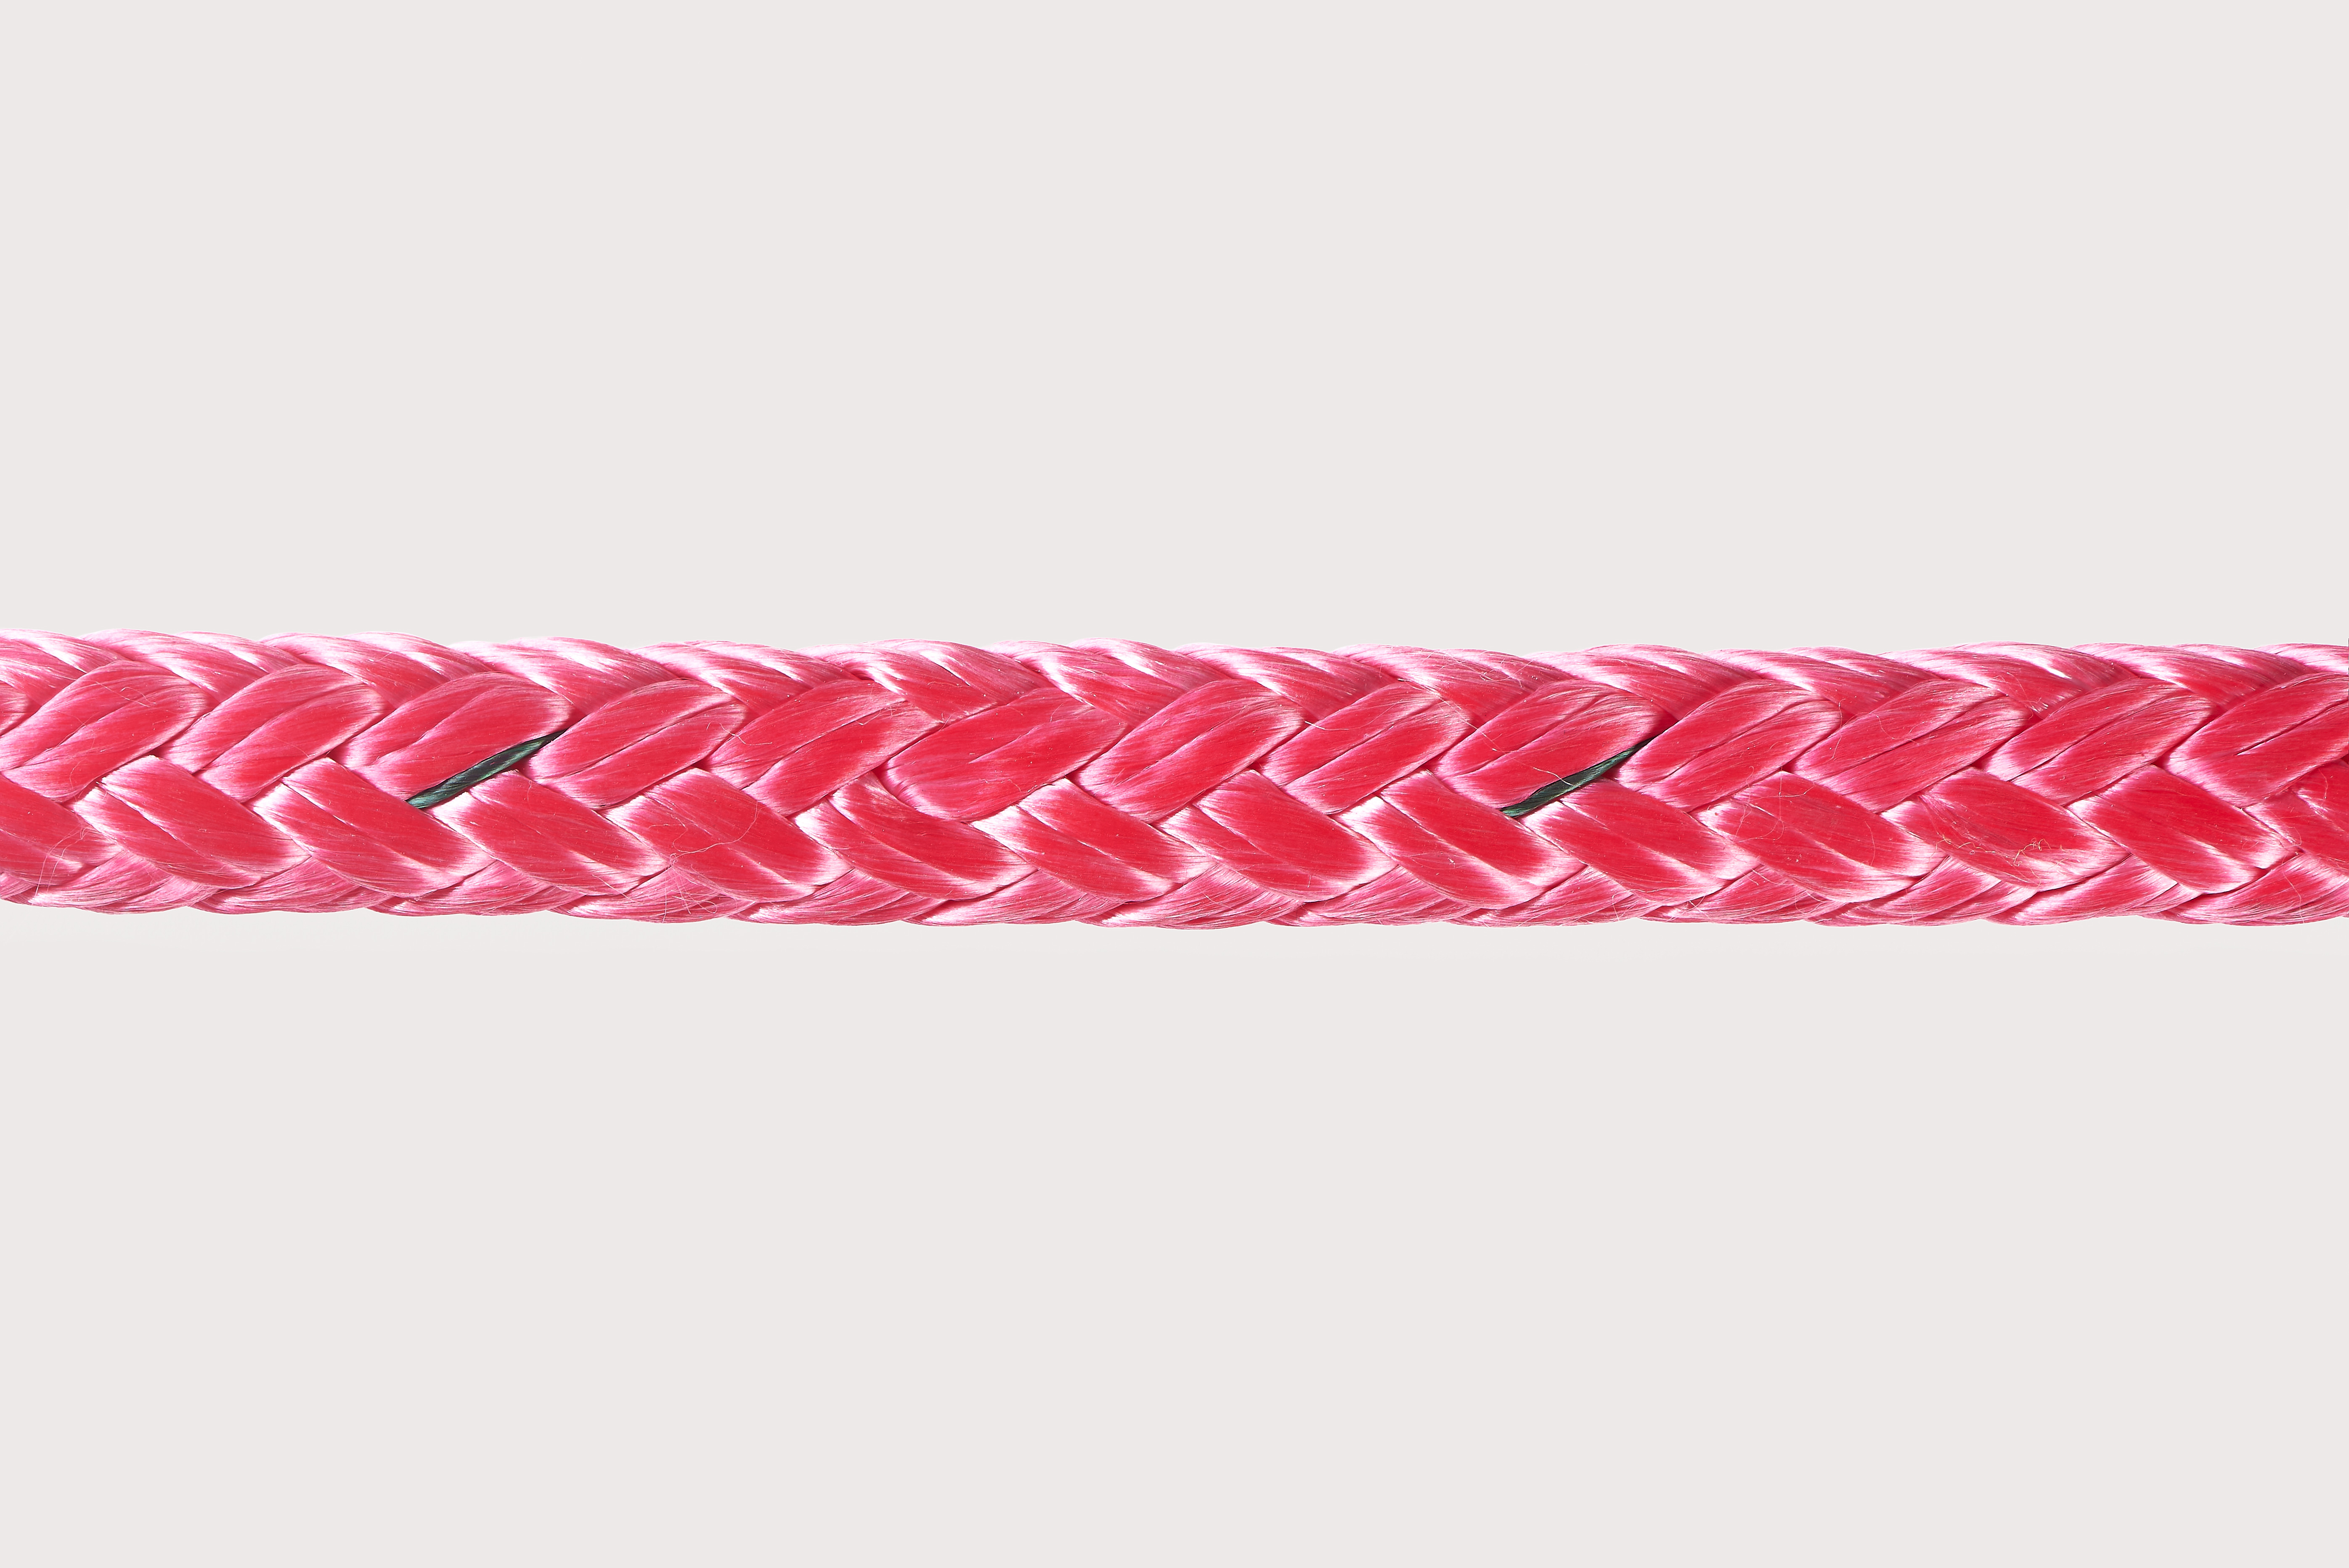 Orion-Cordage-Esterplex 12-Strand Polyester (Two-In-Train)-Red I Green-Horizontal128.jpg